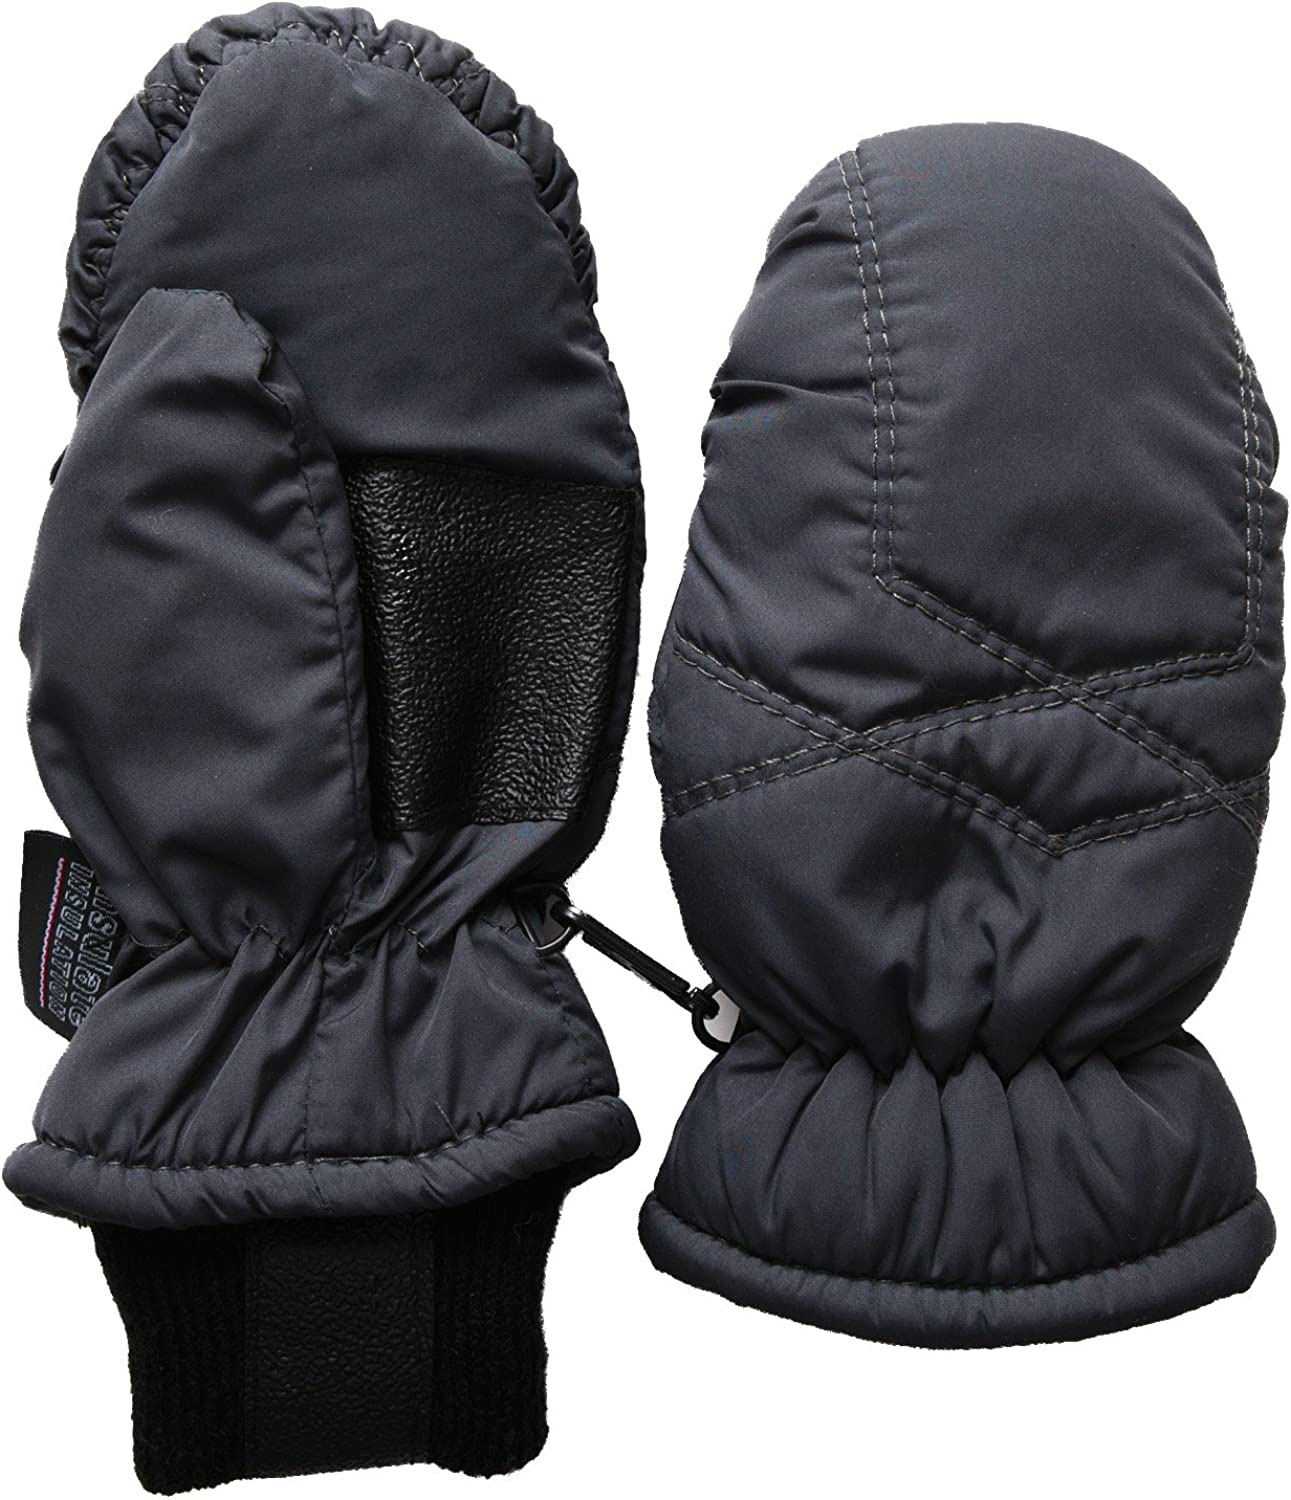 SANREMO Unisex Kids Toddler Thinsulate and Waterproof Cold Weather Ski Mittens